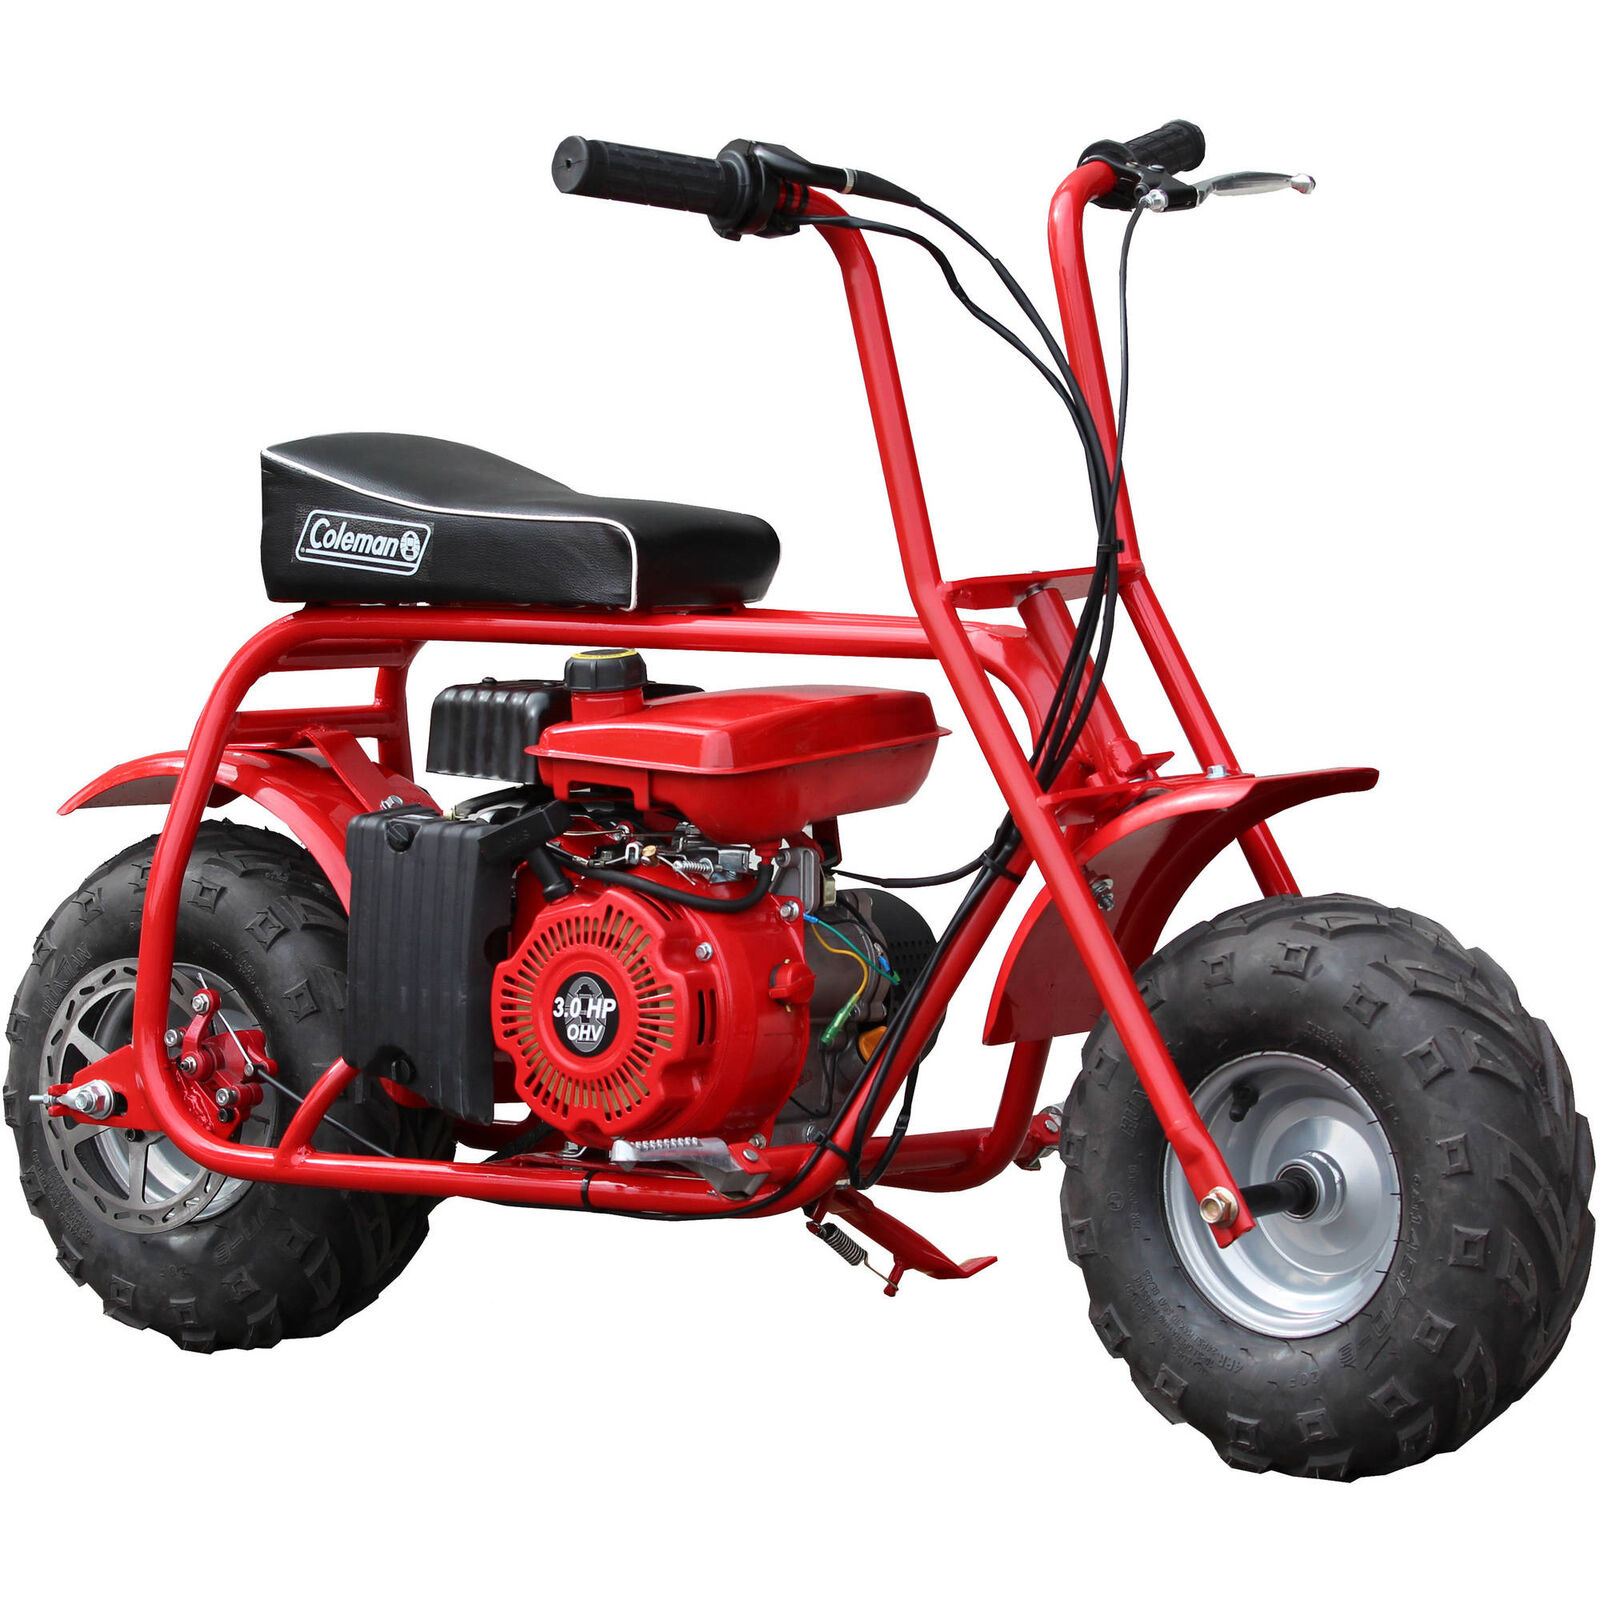 NEW Coleman Powersports CT100U Gas Powered Mini Trail Bike Scooter Trail 100